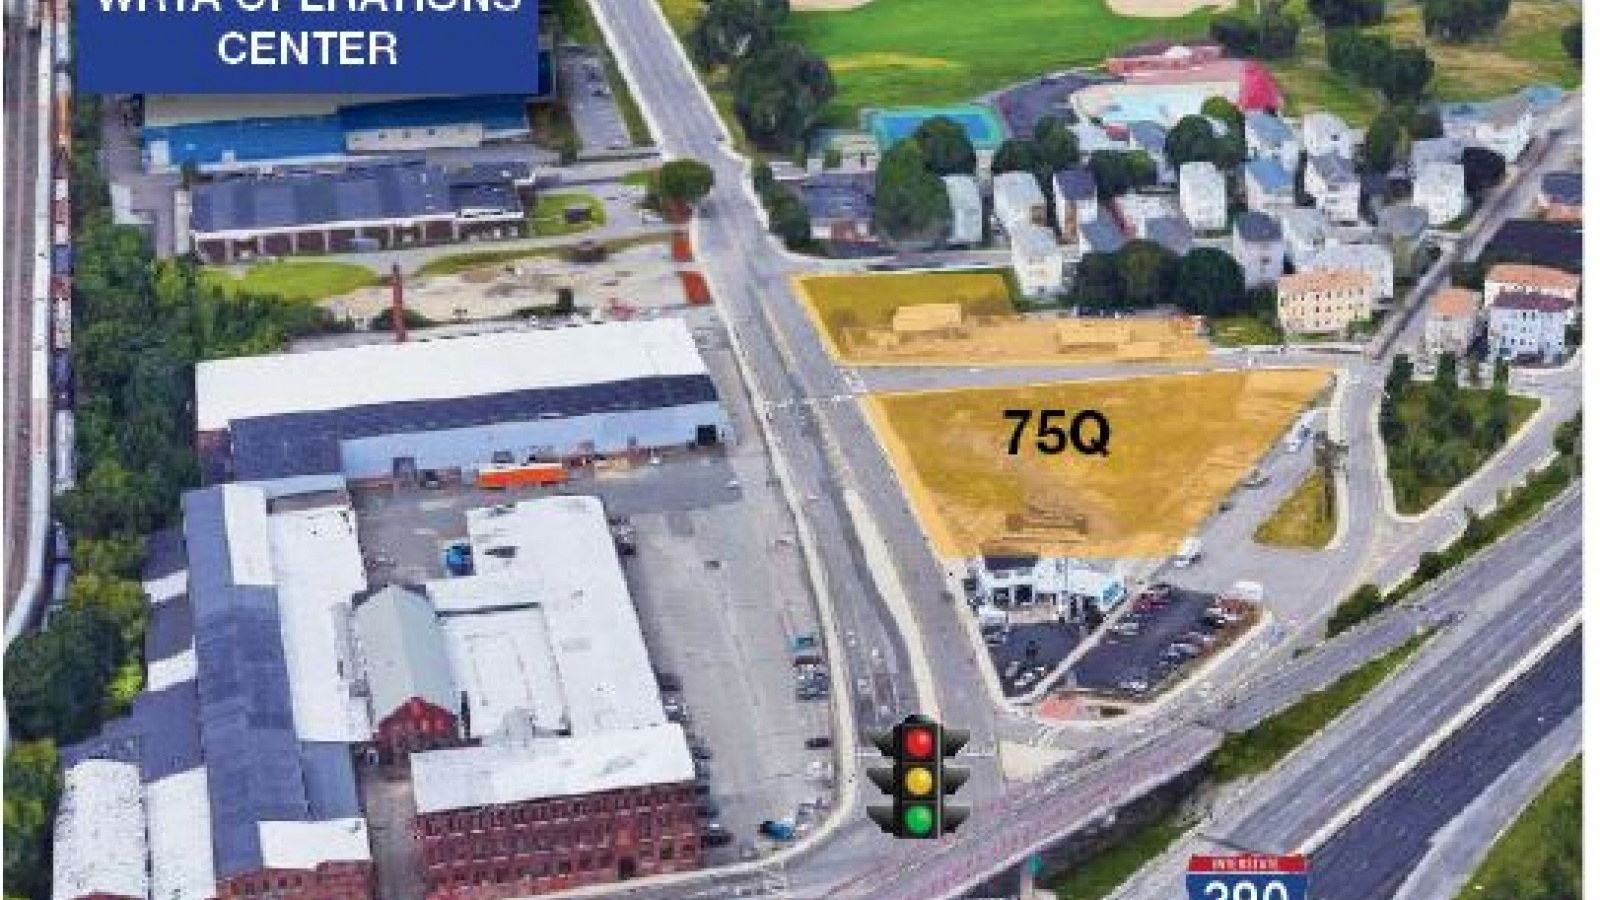 75 Quinsigamond Ave, Worcester, Massachusetts 01610, Land,For Lease,Quinsigamond Ave,1284